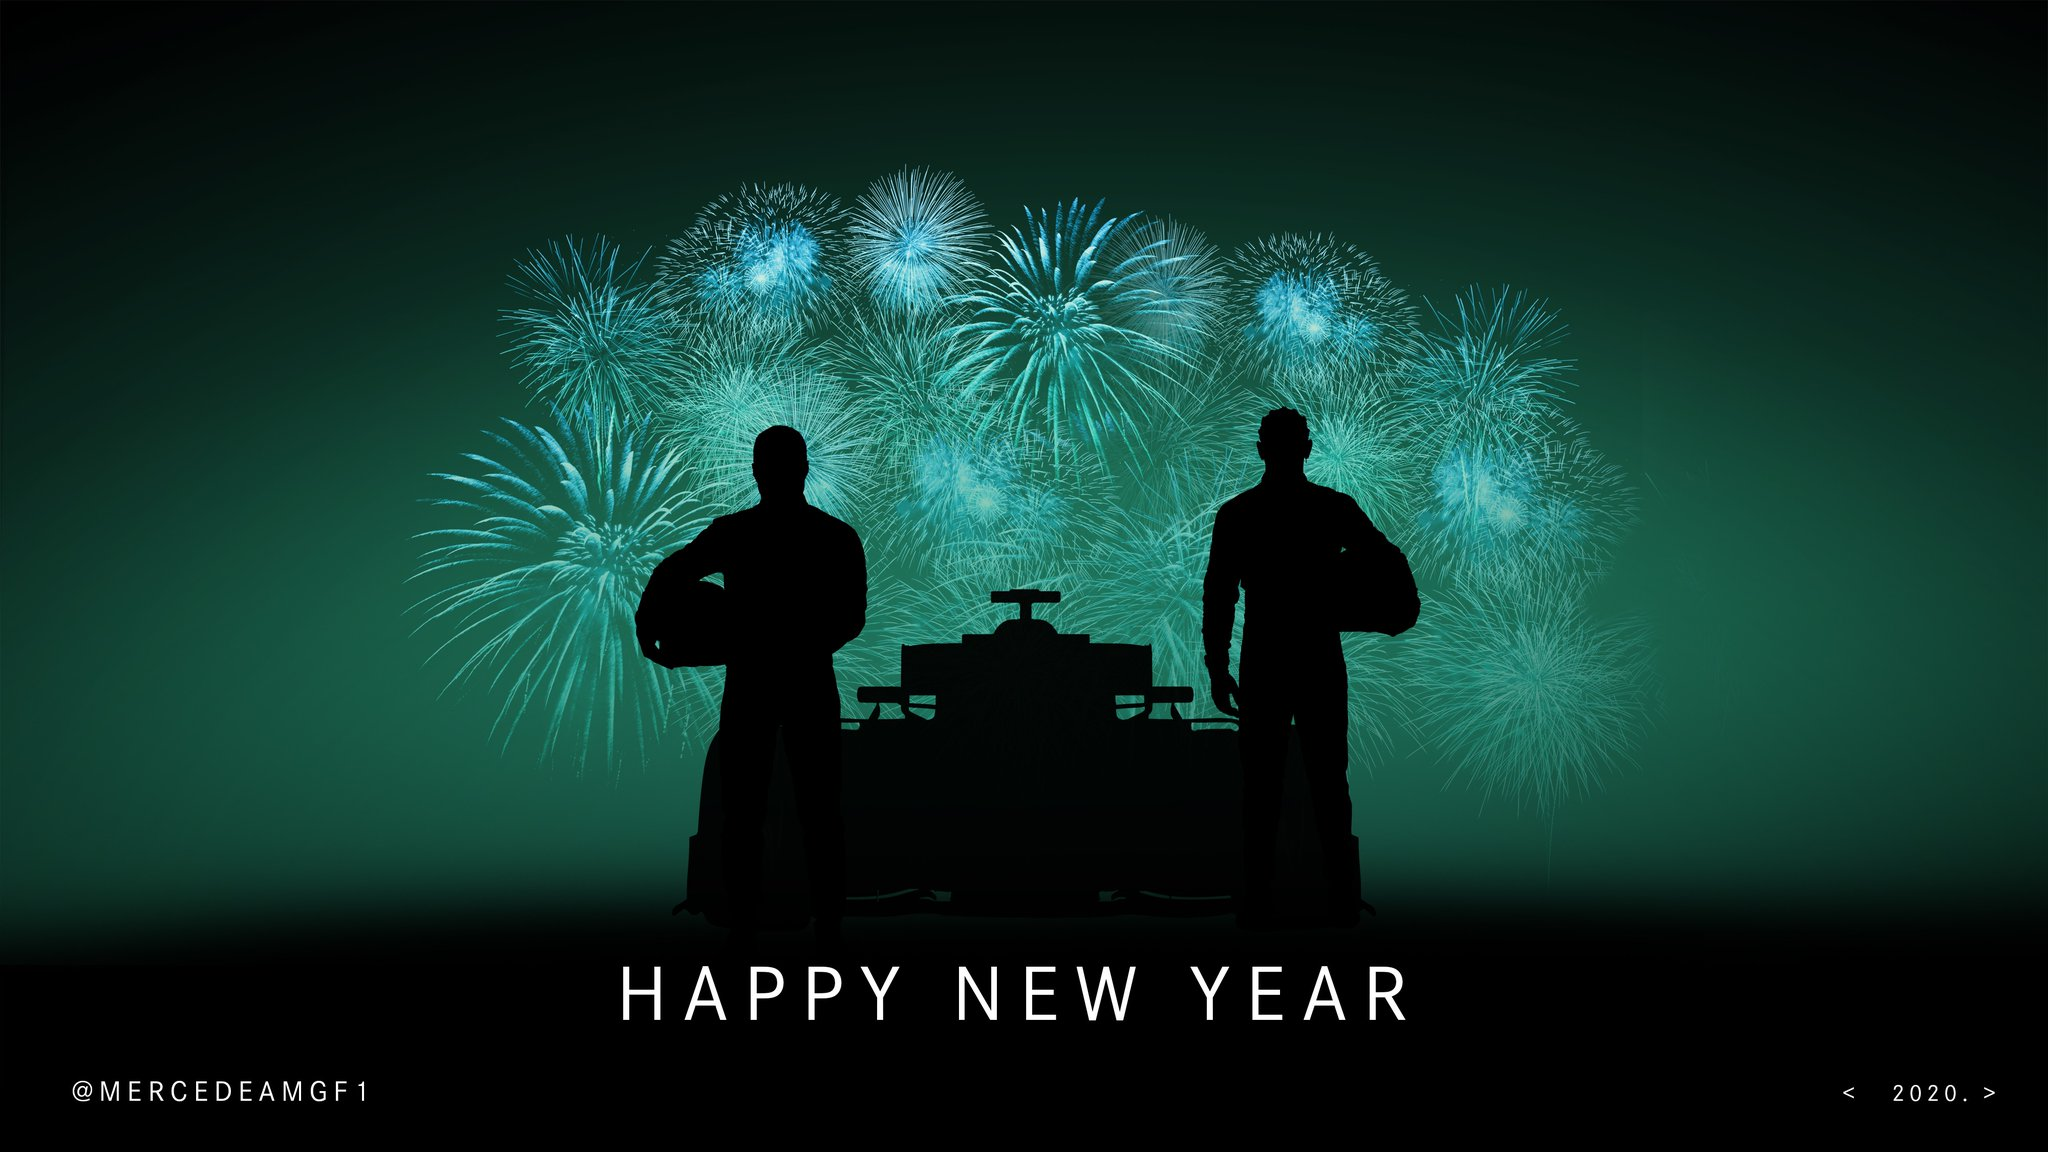 "Mercedes-AMG PETRONAS F1 Team on Twitter: ""🎆 From everyone at the Team,  we'd like to wish you all around the world a Happy New Year! Thanks for all  your support in 2019"